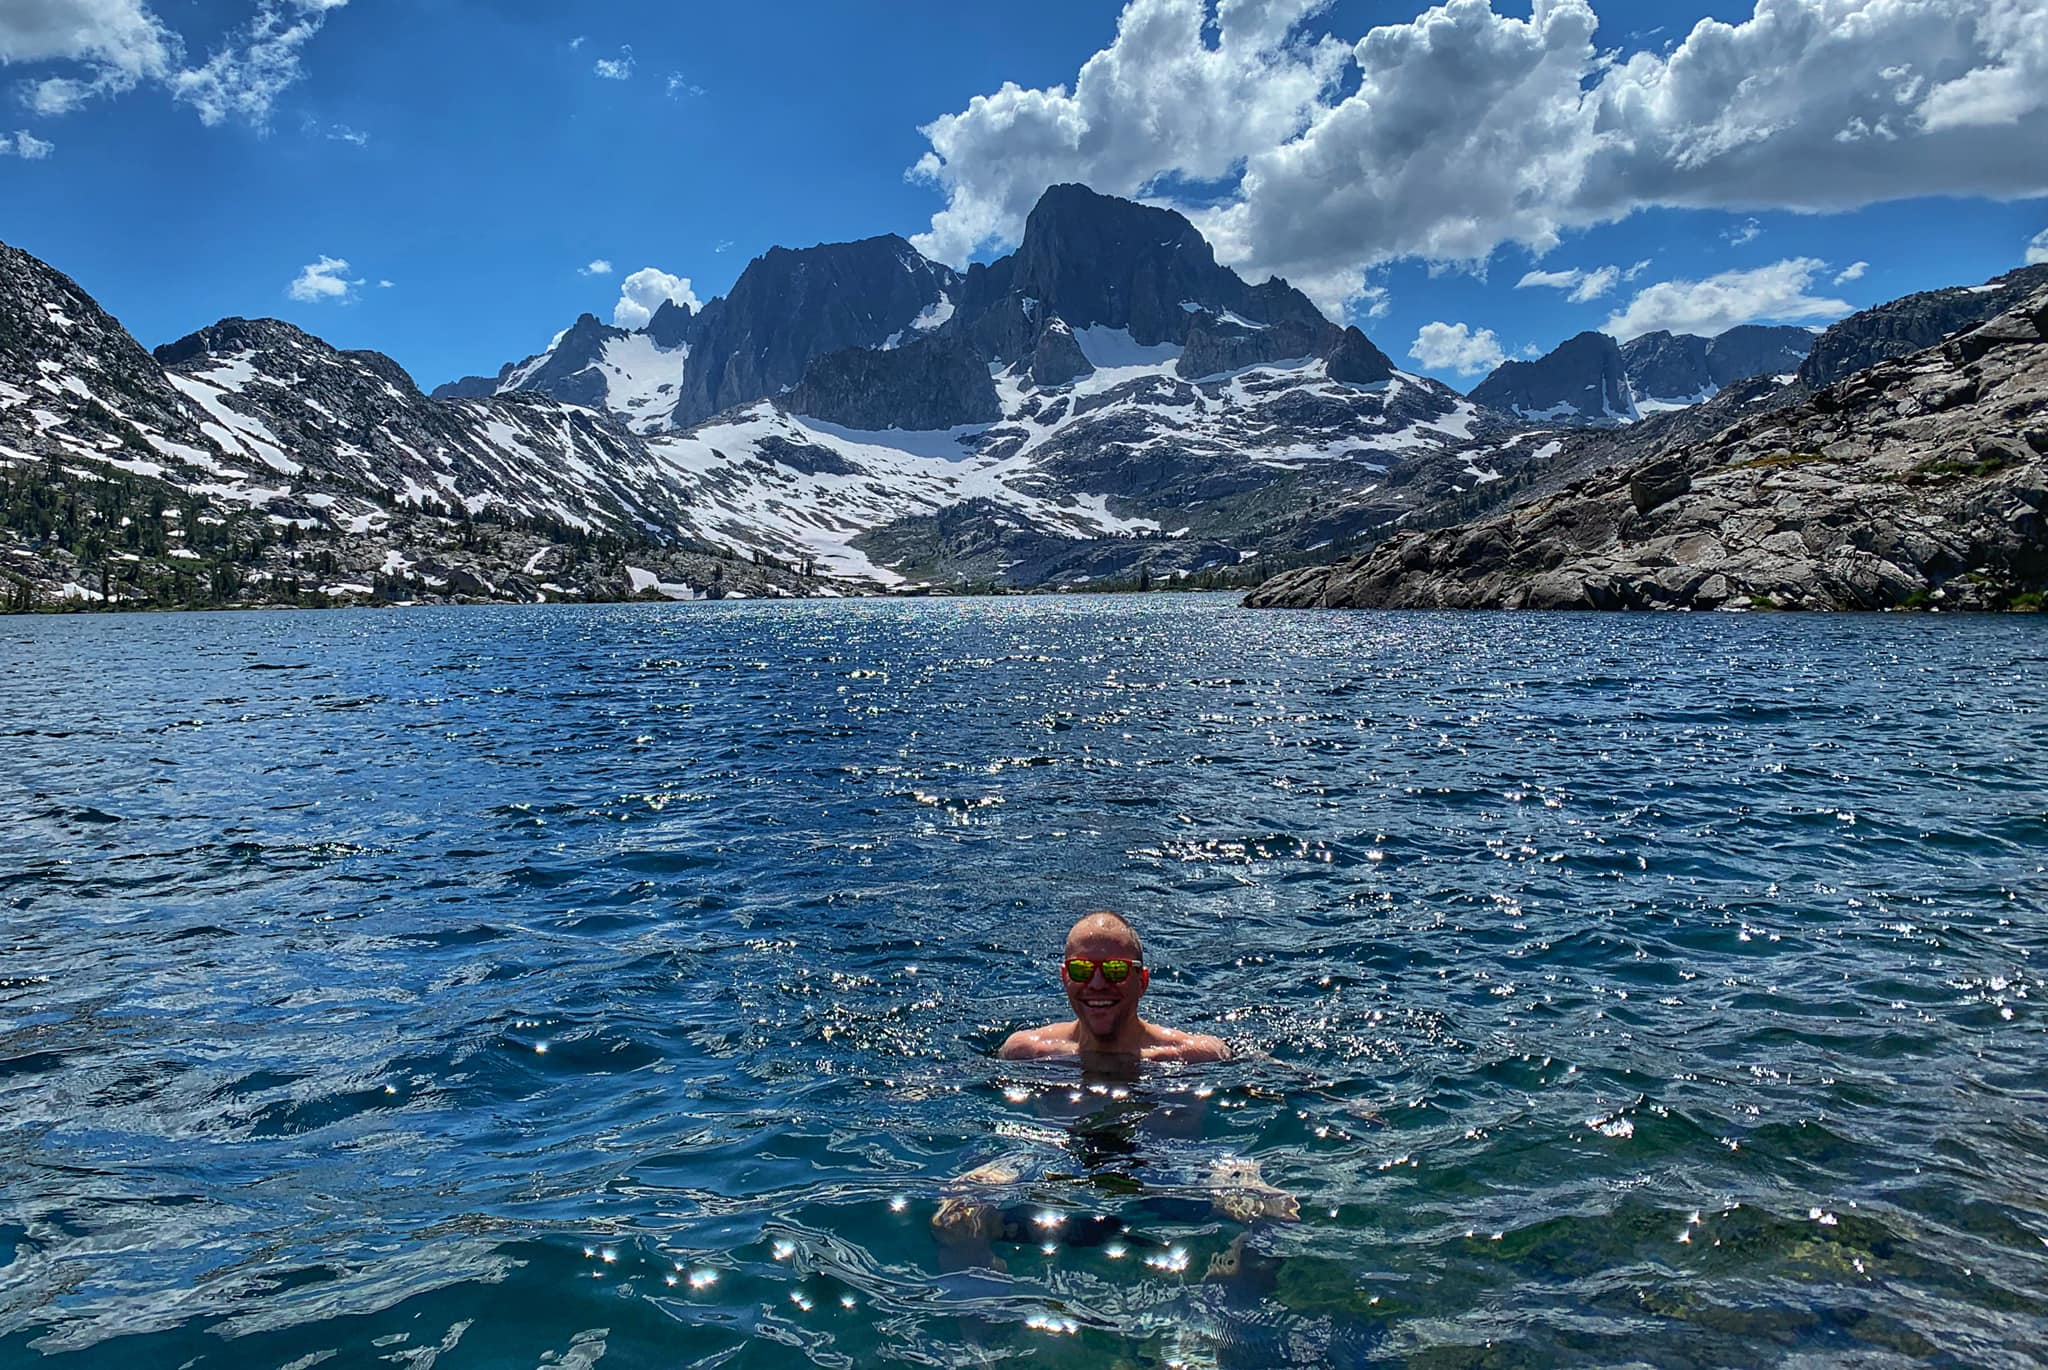 Taking a dip in Garnet Lake